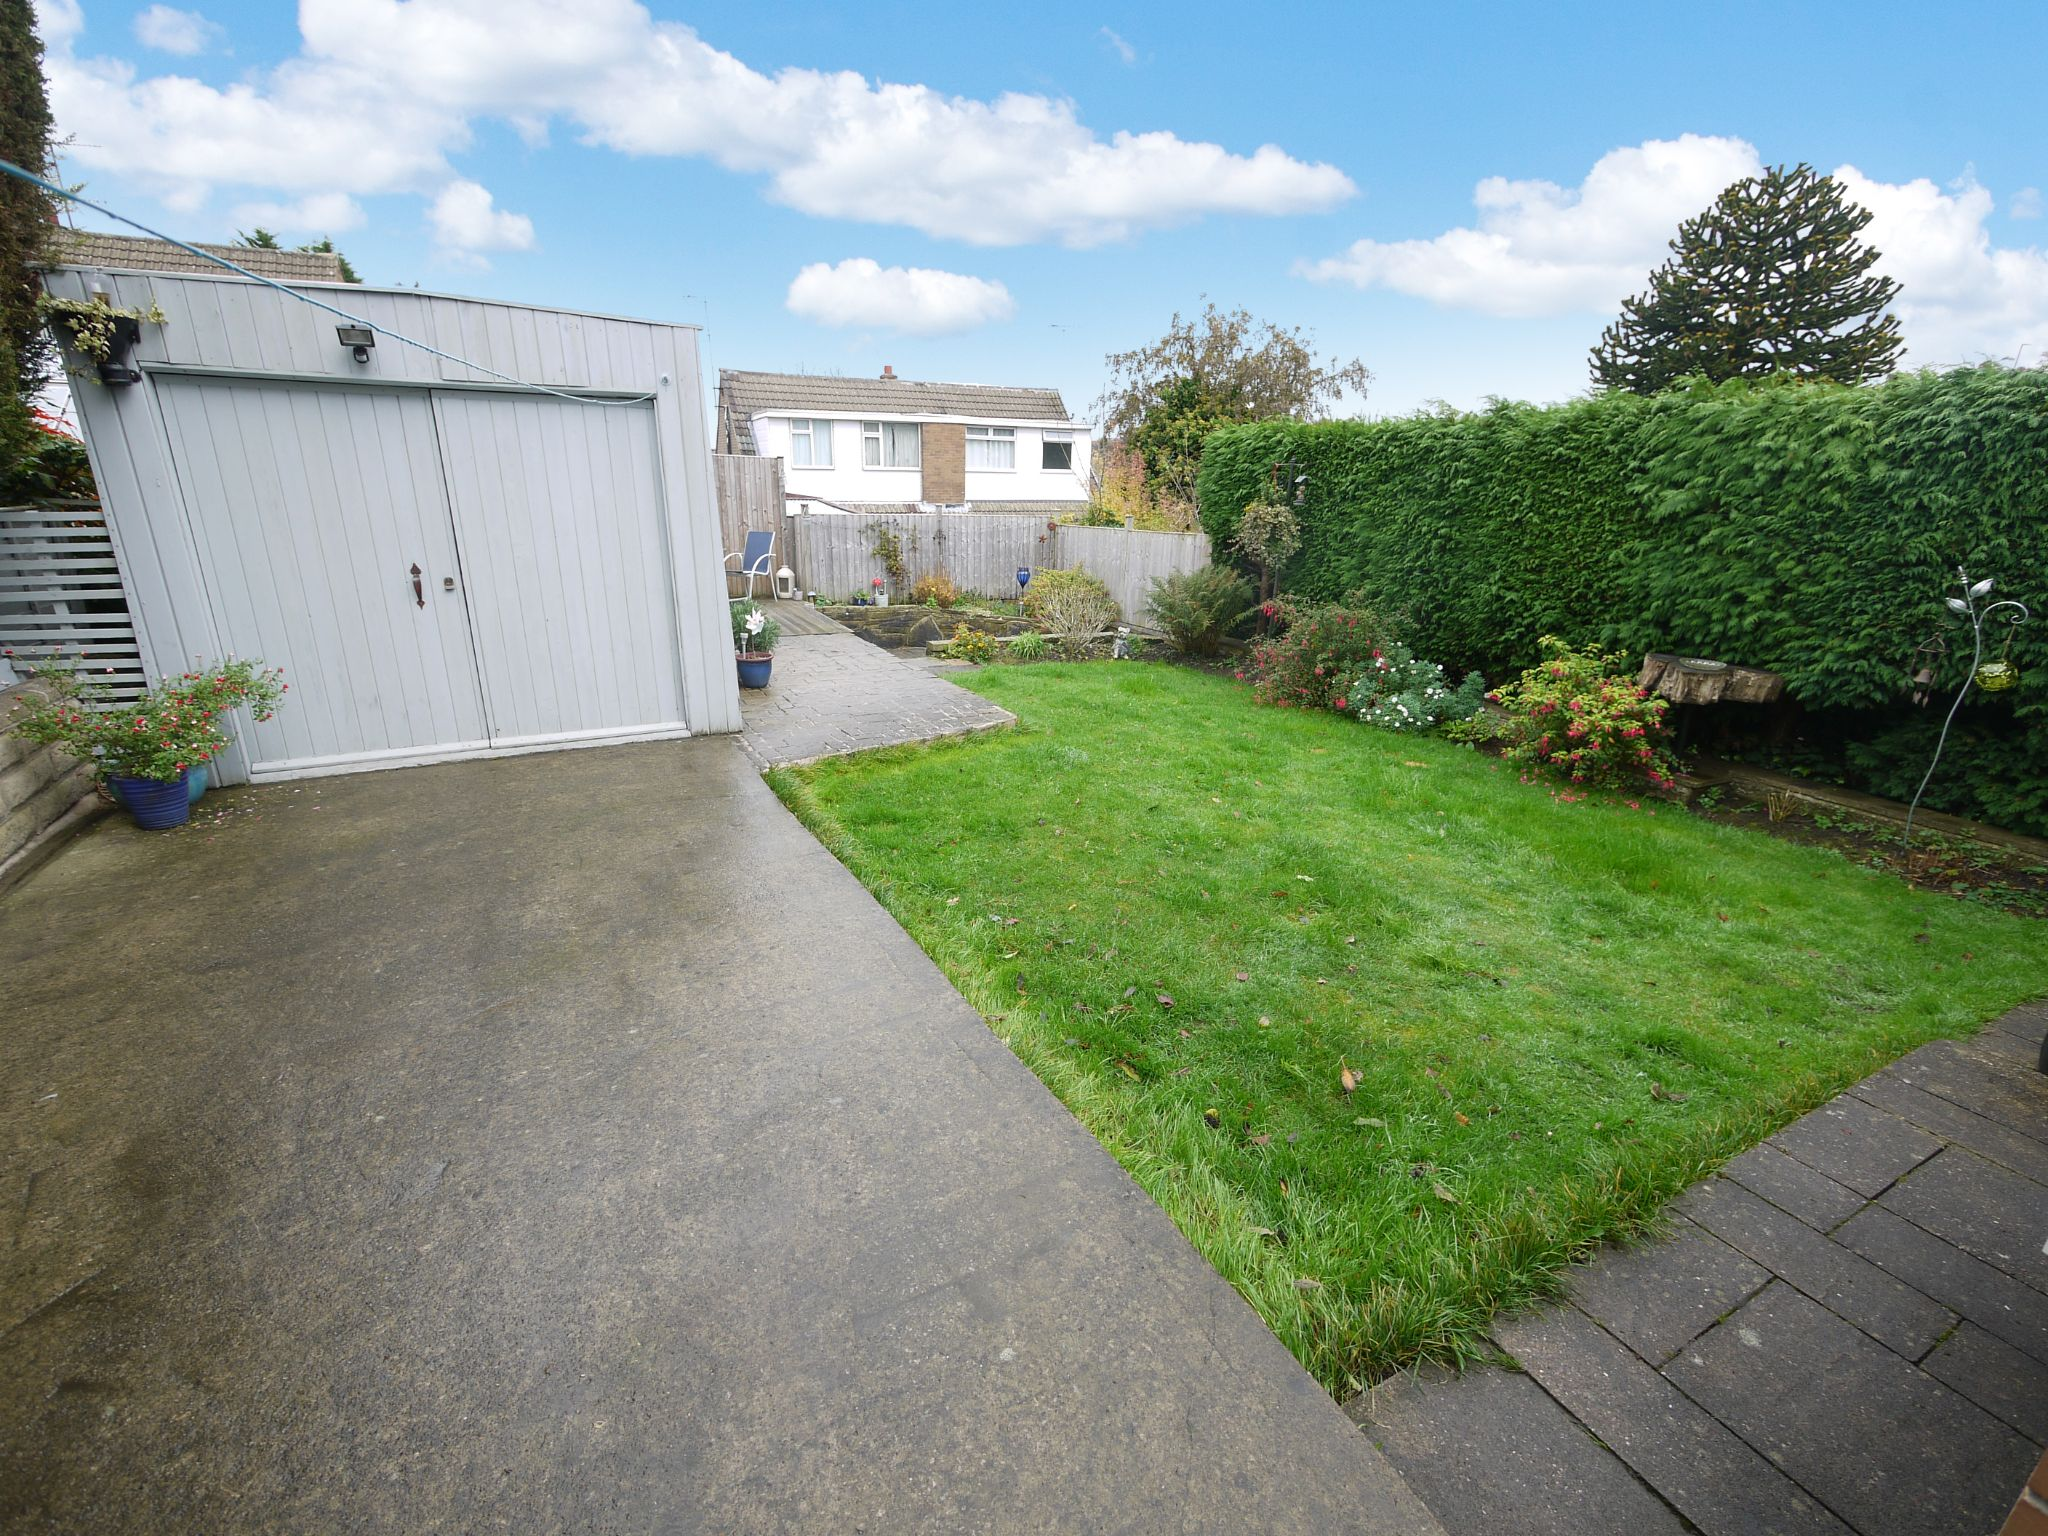 3 bedroom semi-detached house SSTC in Brighouse - Rear Garden.